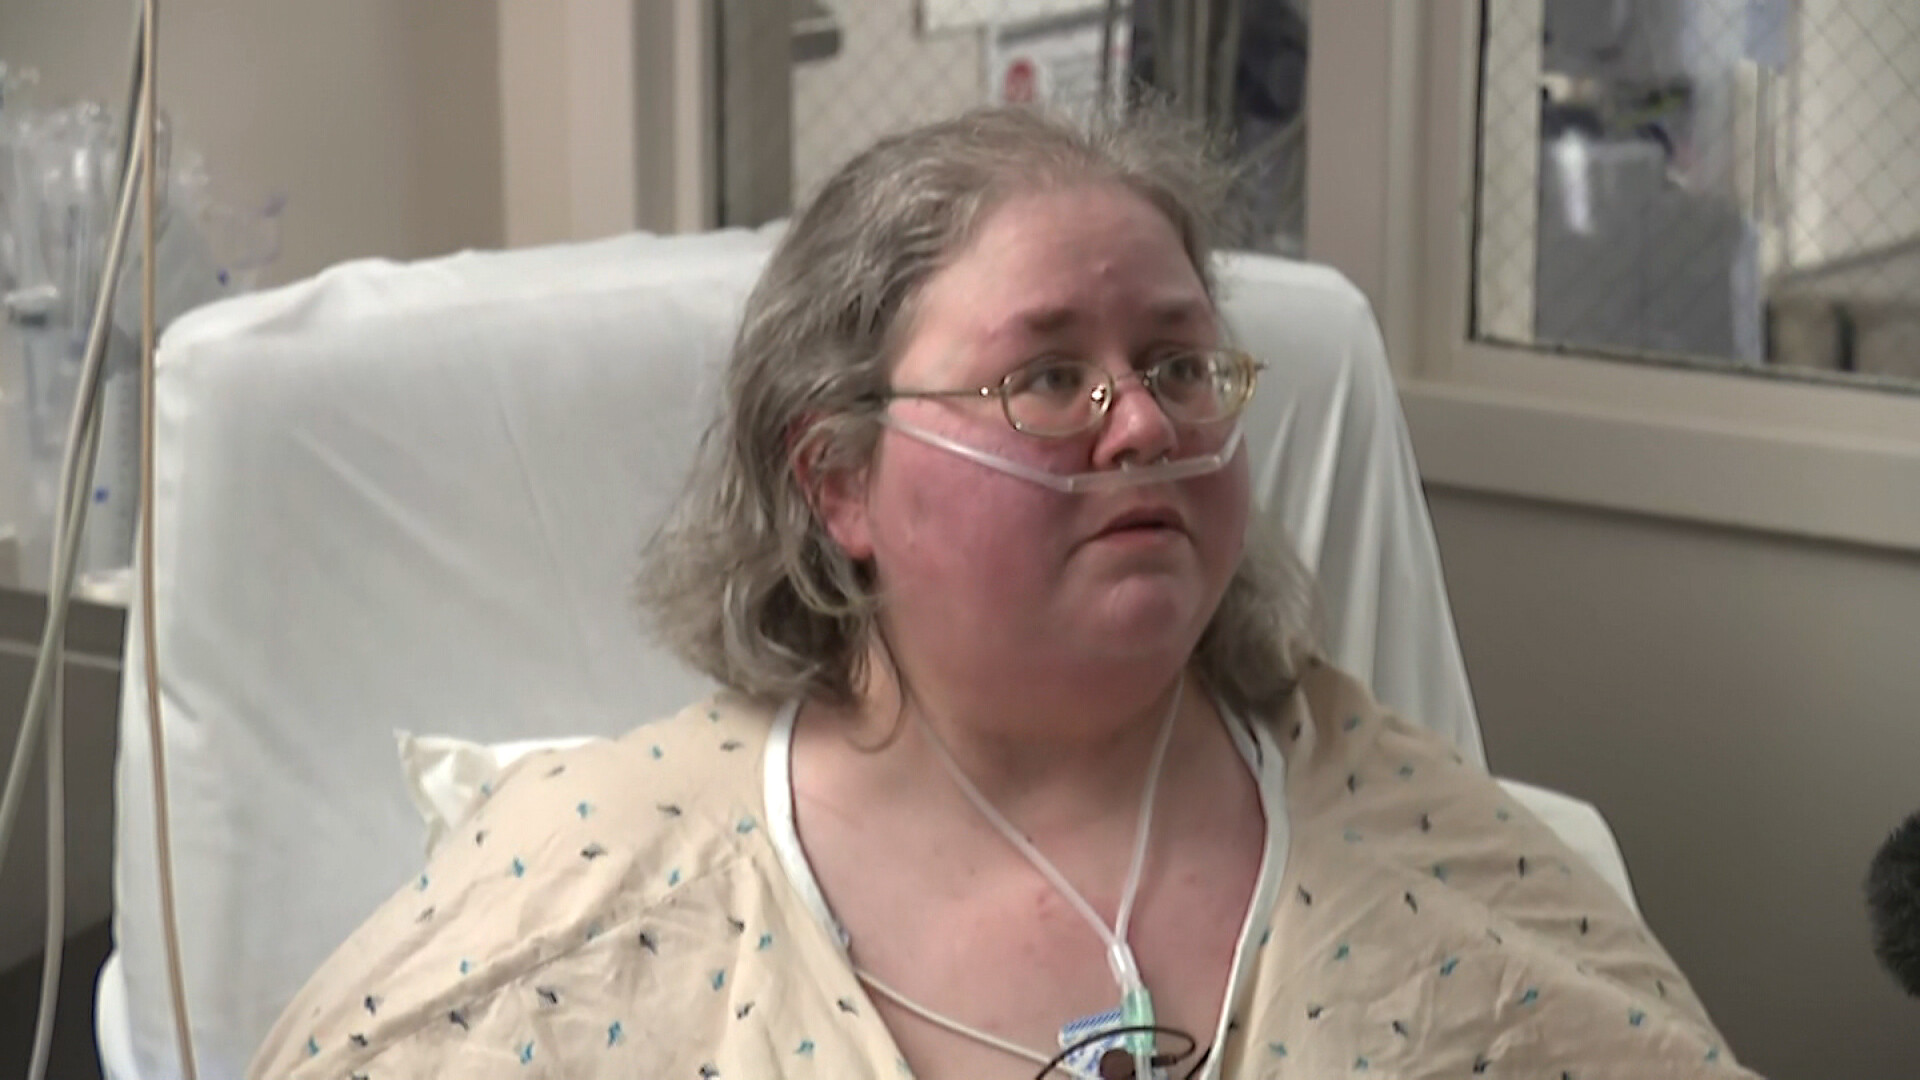 'I am furious with myself': Unvaccinated Covid patient describes the exhausting illness